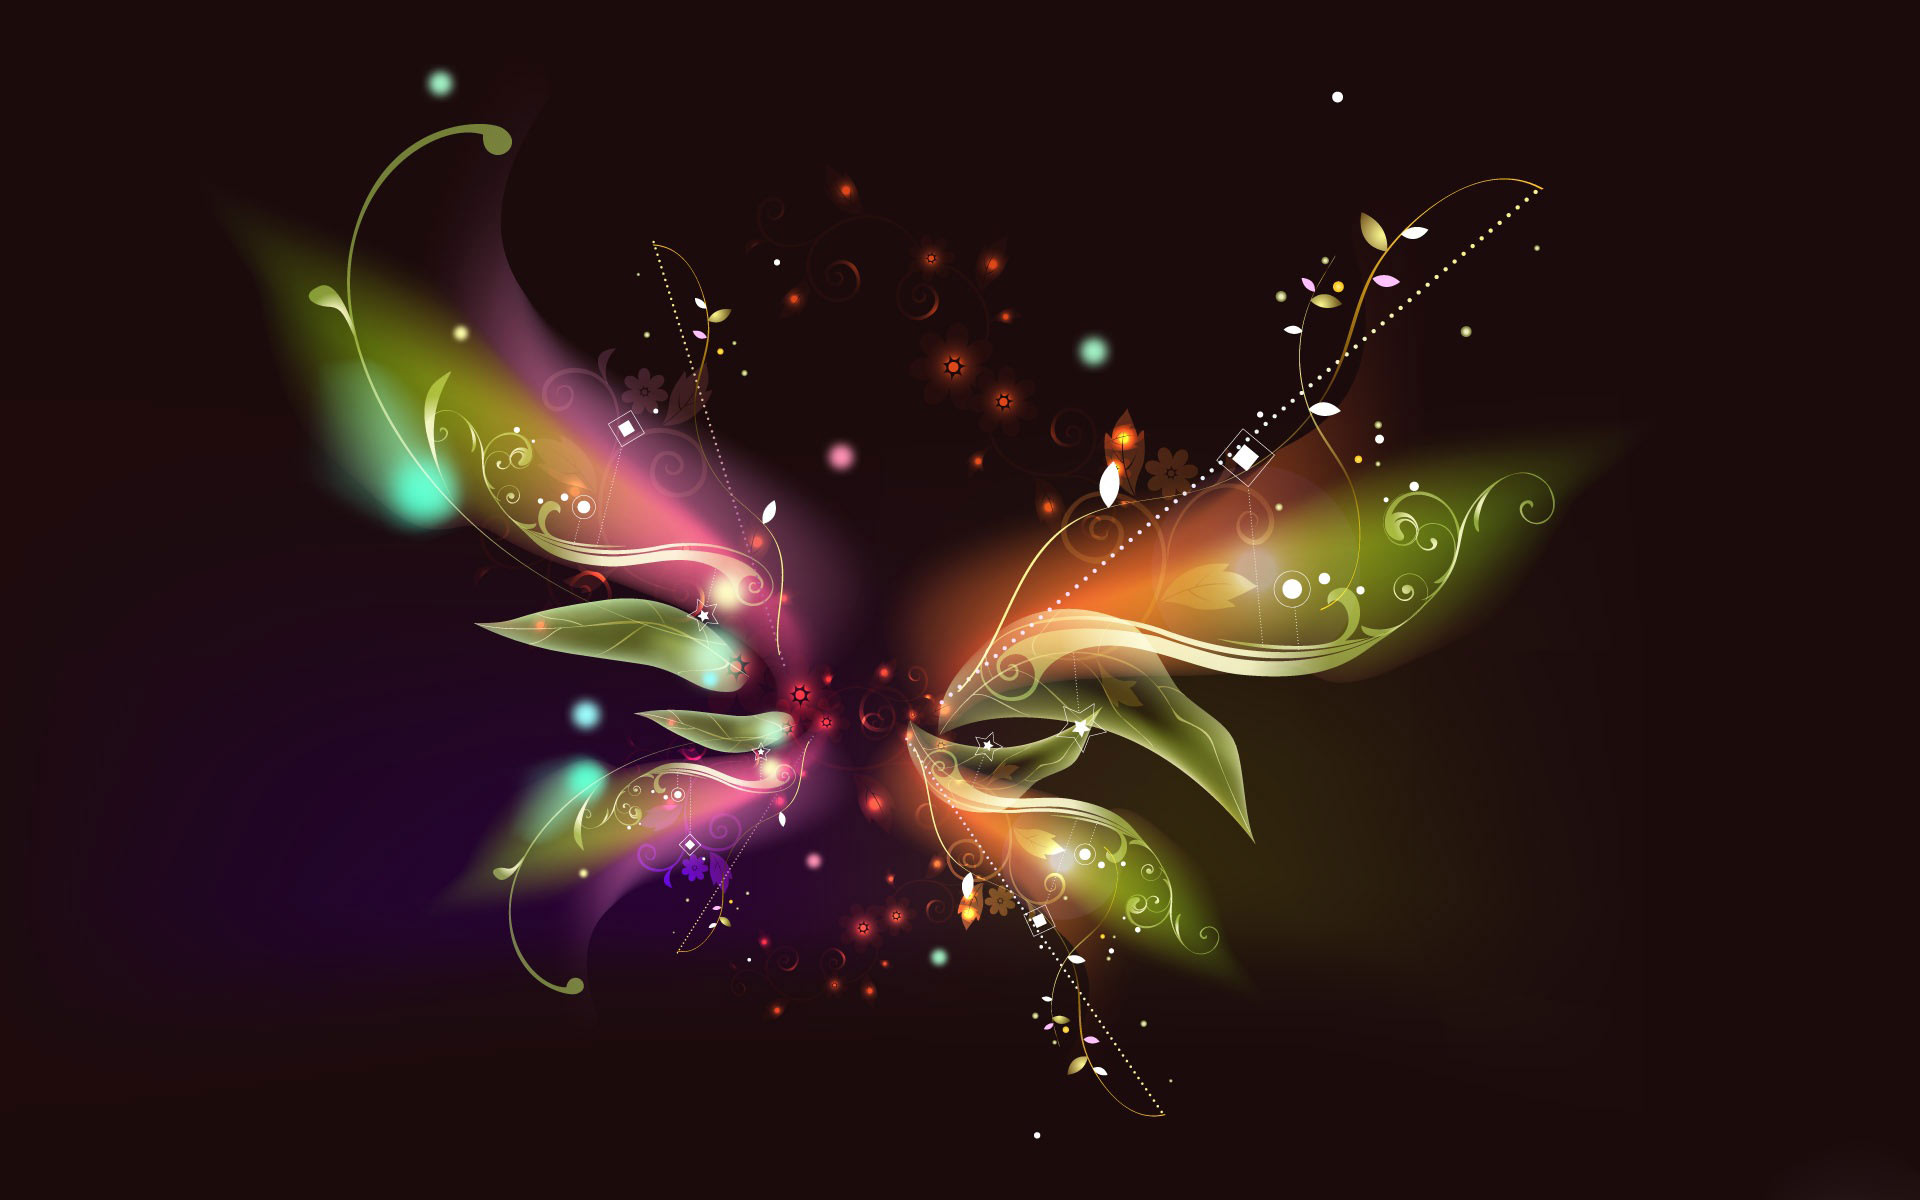 butterflies live wallpaper free download aa